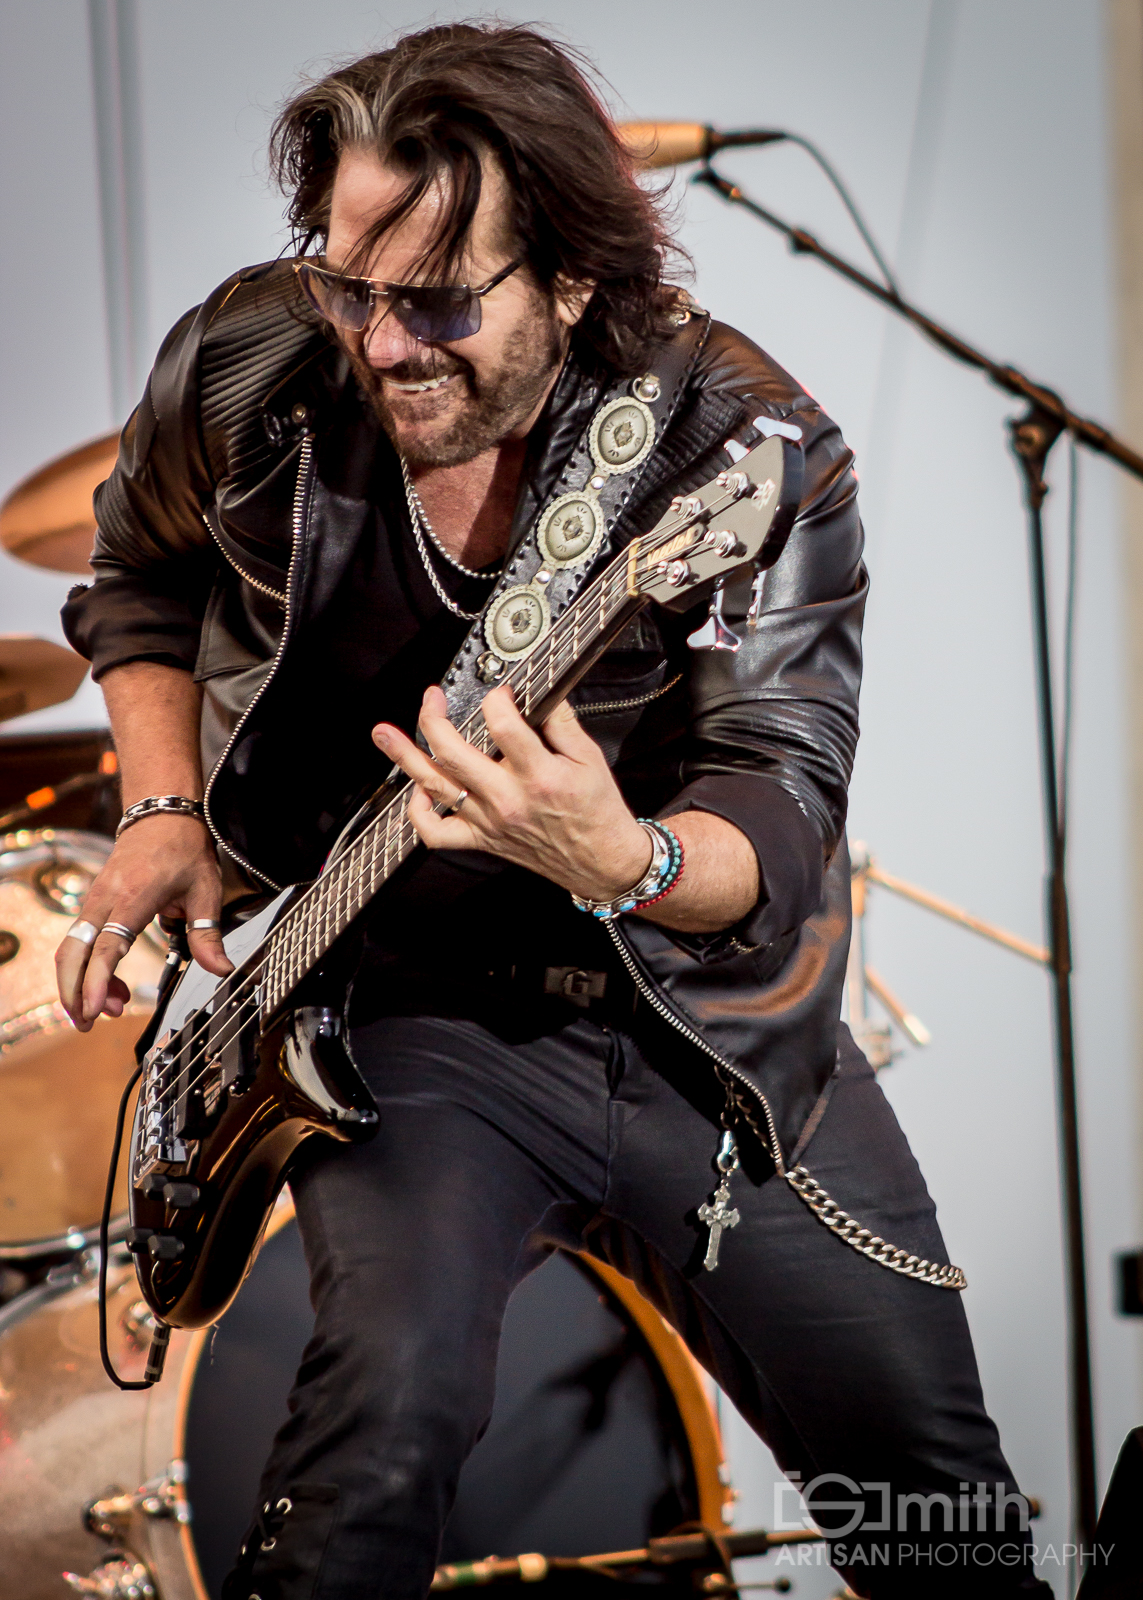 Although the picture above is Kip Winger, I am referring to all musicians and those who help to touch lives through music. I simply used this picture because I liked it. :)